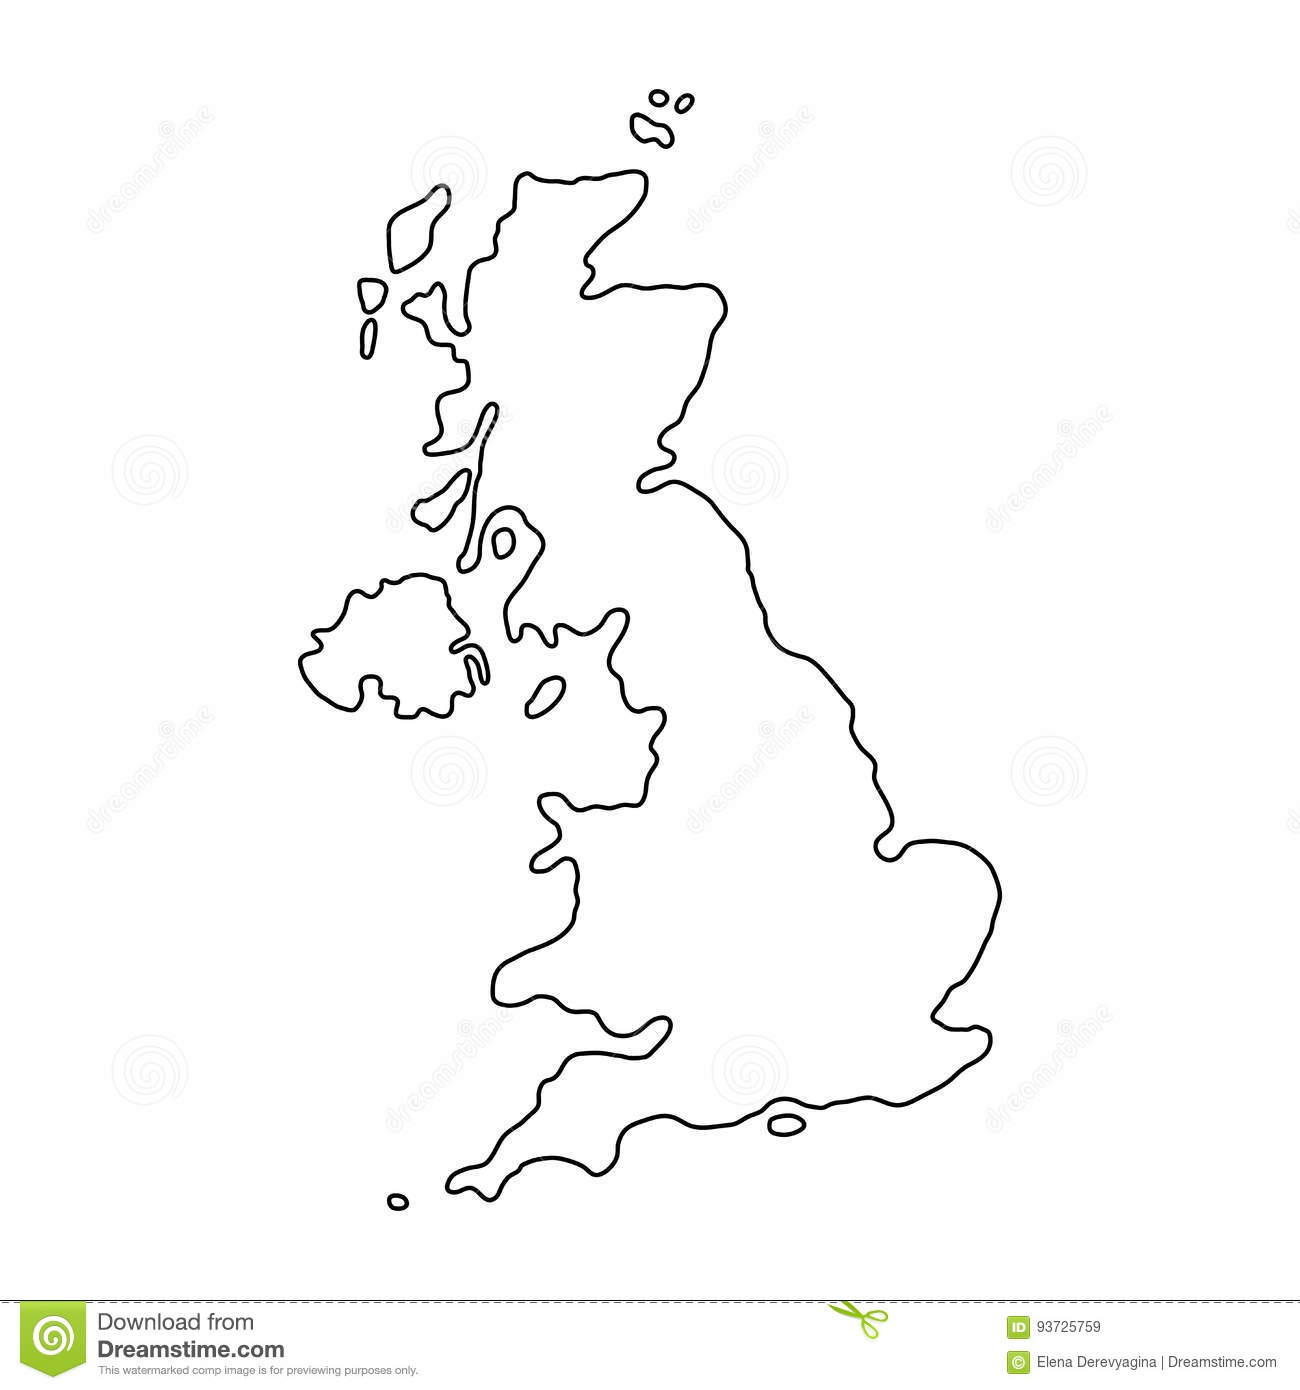 Map Of Uk Black And White.The United Kingdom Of Great Britain And Northern Ireland Map Black